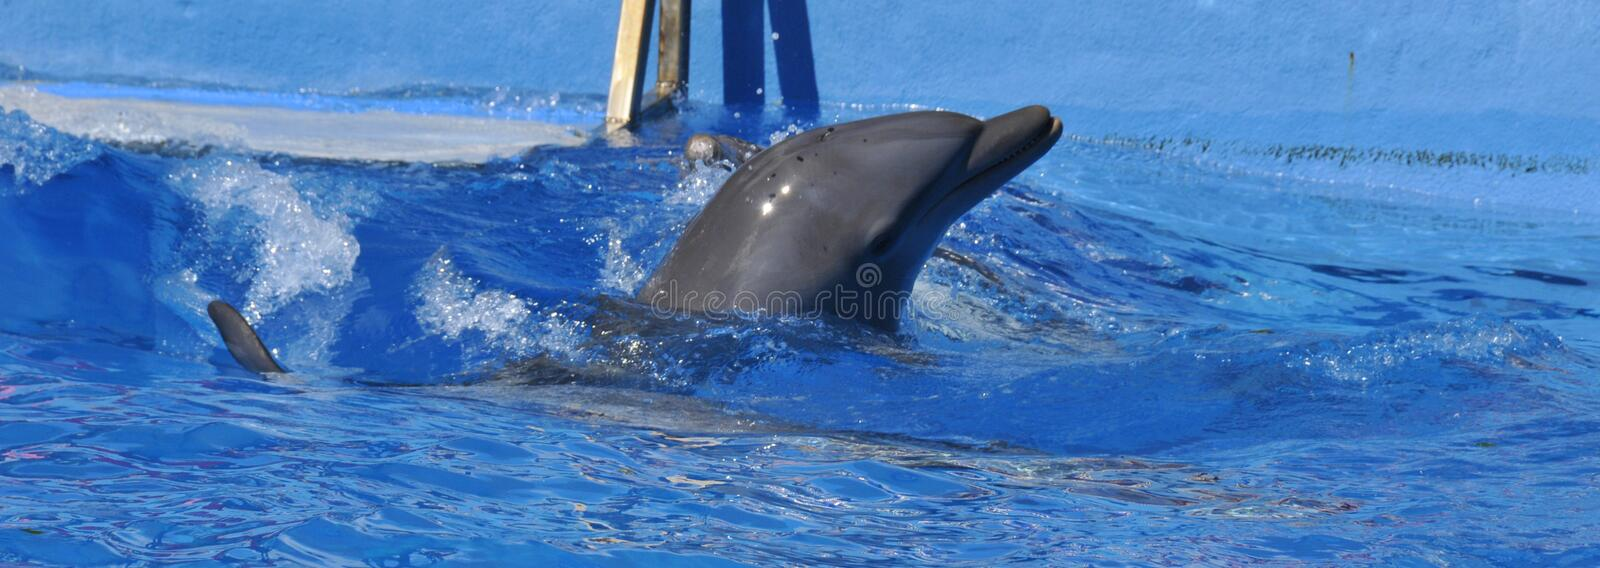 Dolphins are a widely distributed and diverse group of aquatic mammals. They are an informal grouping within the order Cetacea, excluding whales and porpoises stock photo